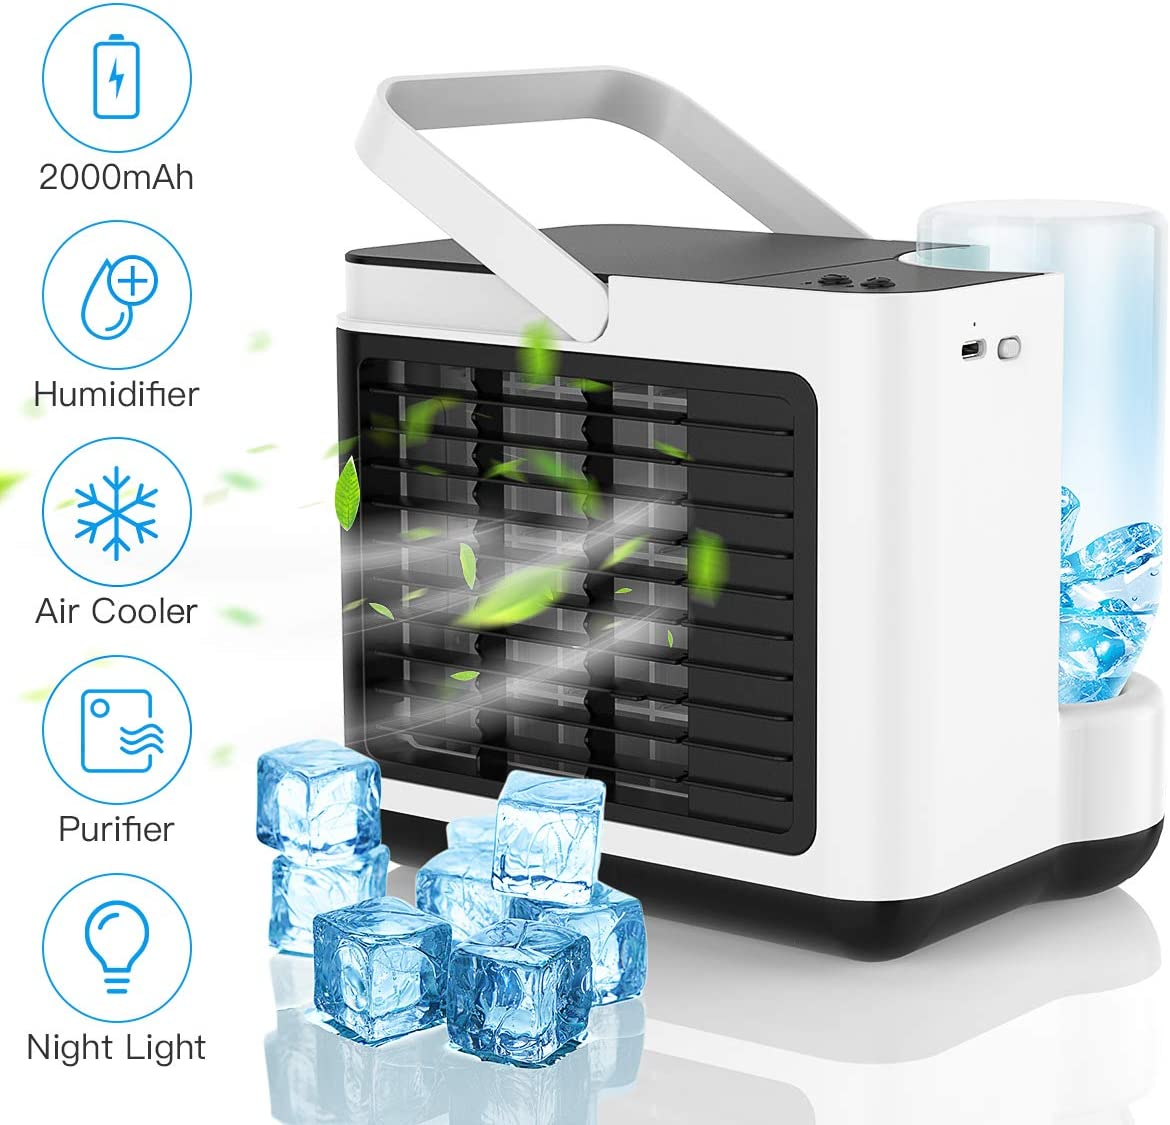 Personal Air Cooler,Portable Air Conditioner Fan,USB Rechargeable Quiet Mini Cooling Fan,Small Desktop Cooler Fan, Evaporative,Humidifier,Purifier with LED Light 3 Speed for Home,Office,Bedroom-White